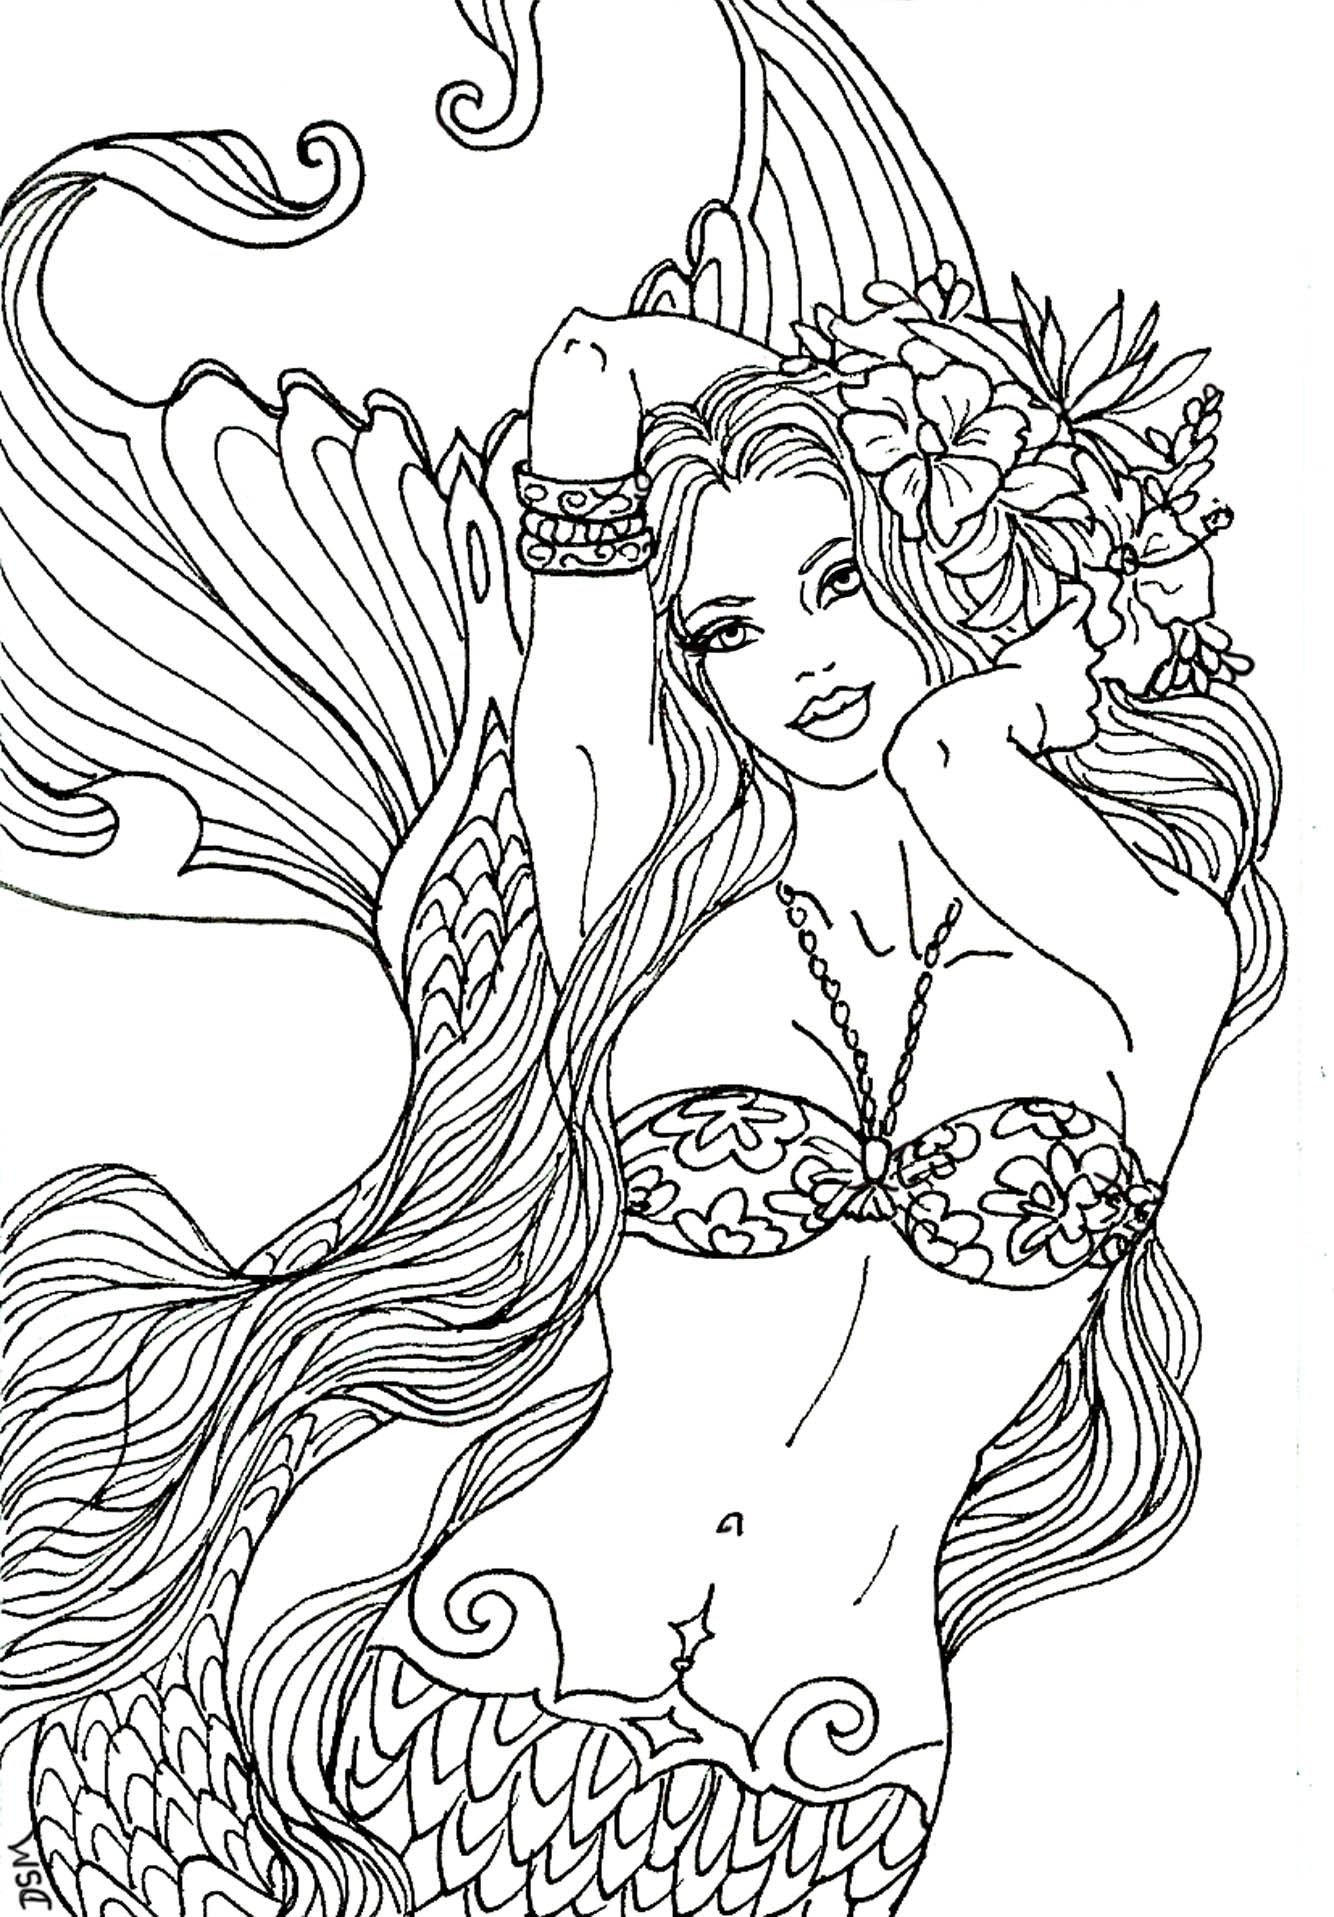 Coloring pages portraits